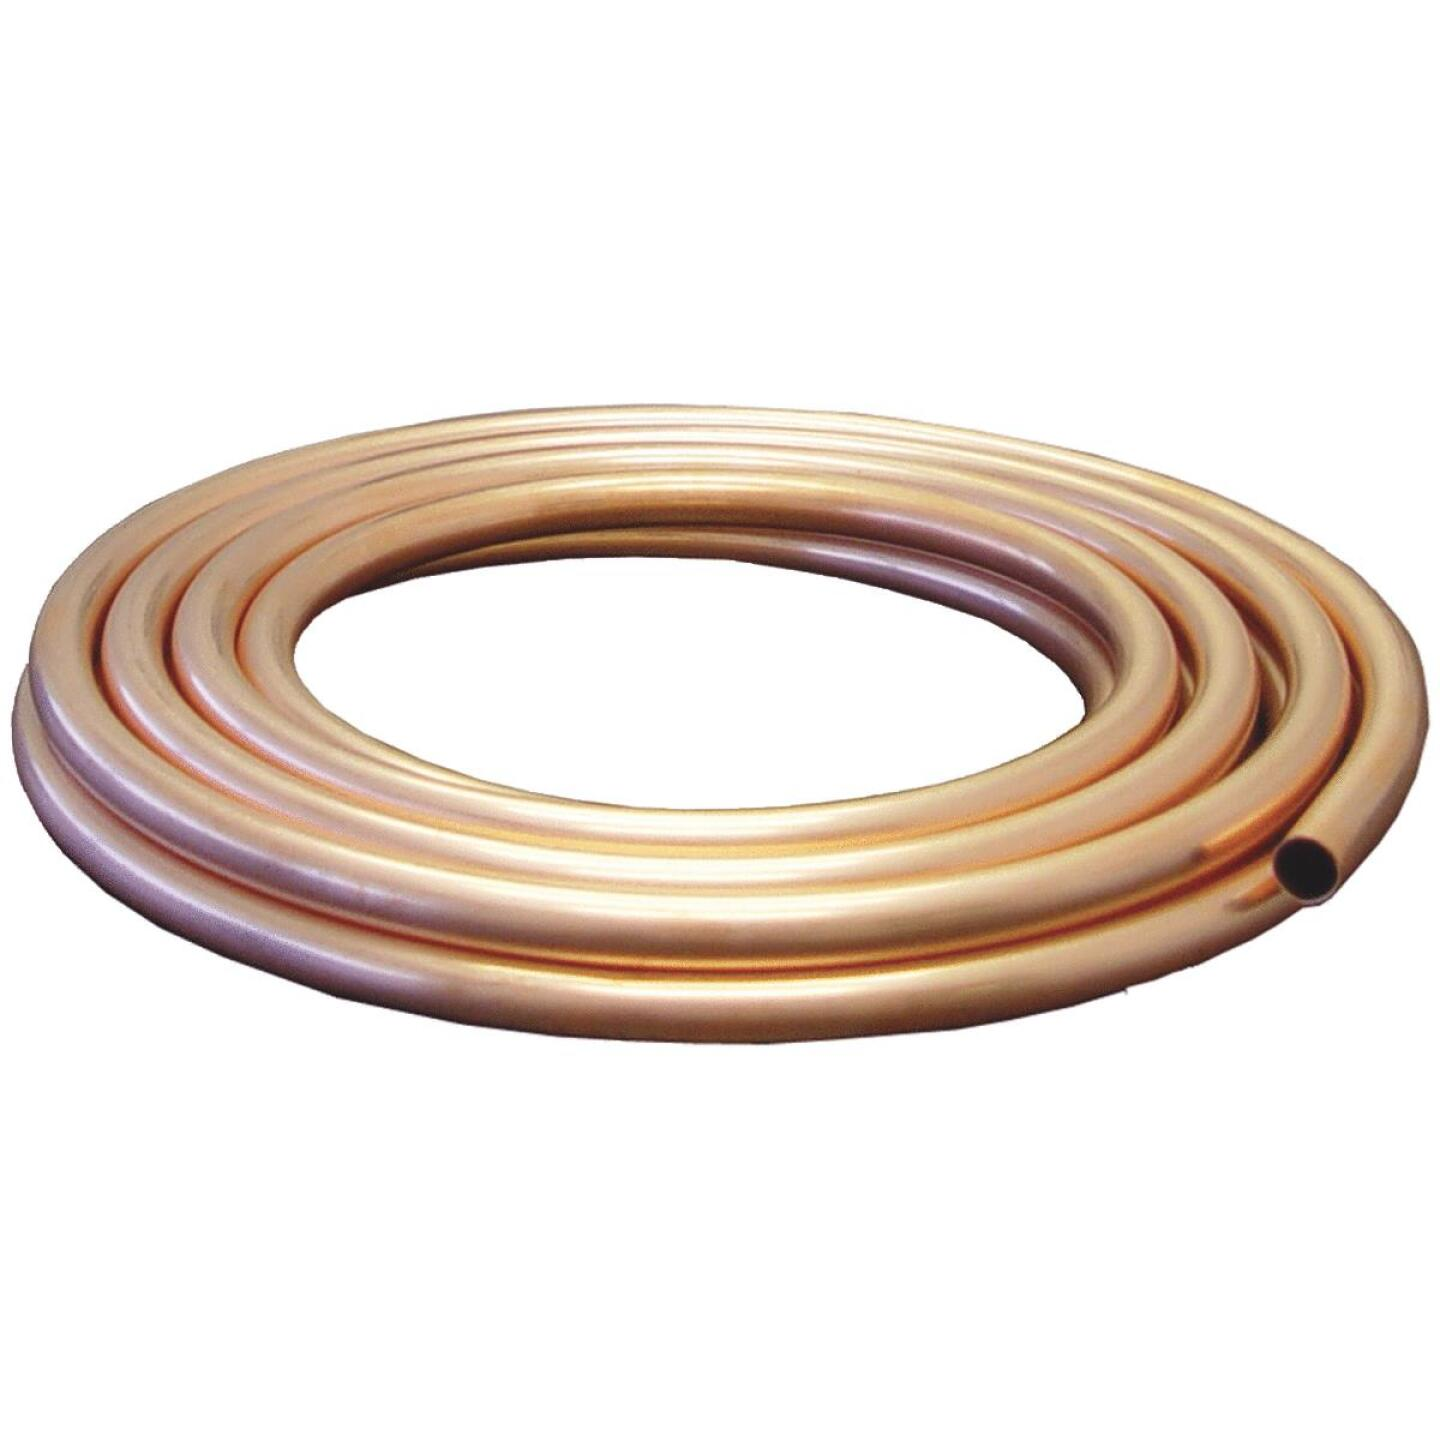 Mueller Streamline 3/8 In. OD x 5 Ft. Utility Grade Copper Tubing Image 1